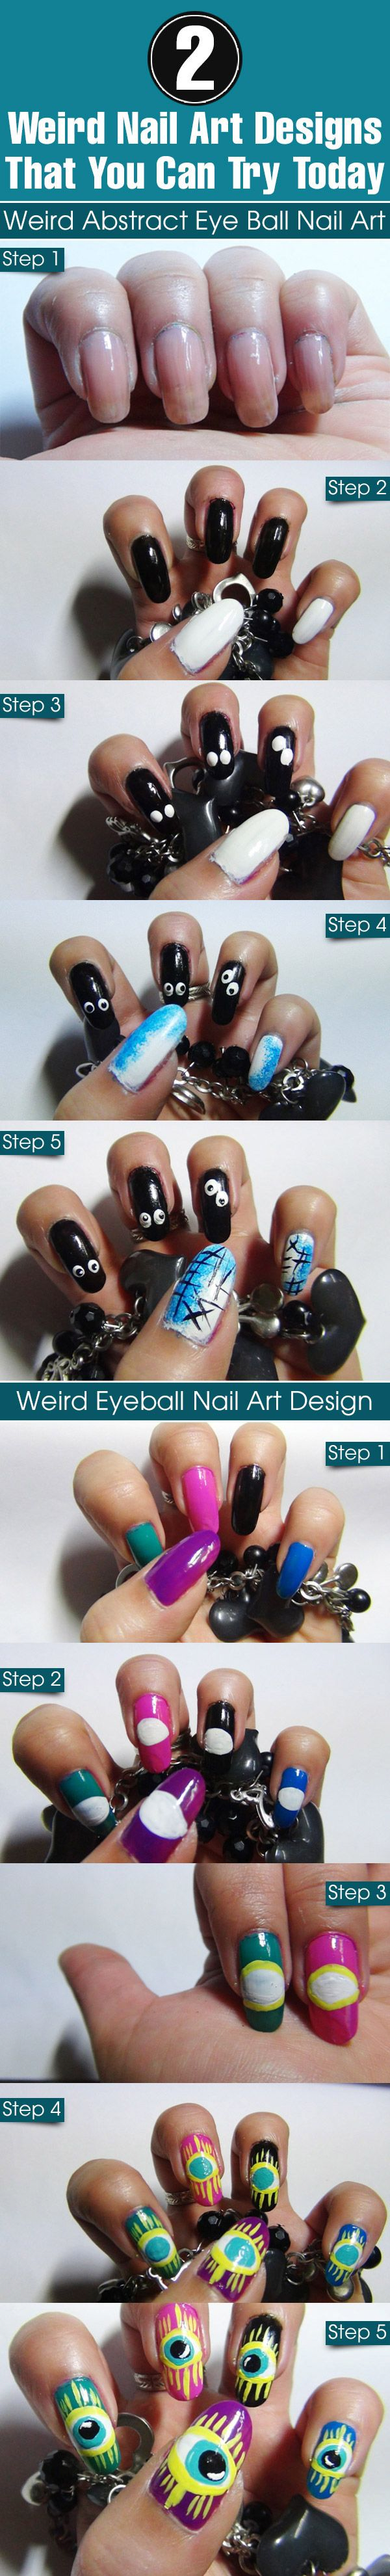 2 Weird Nail Art Designs That You Can Try Today